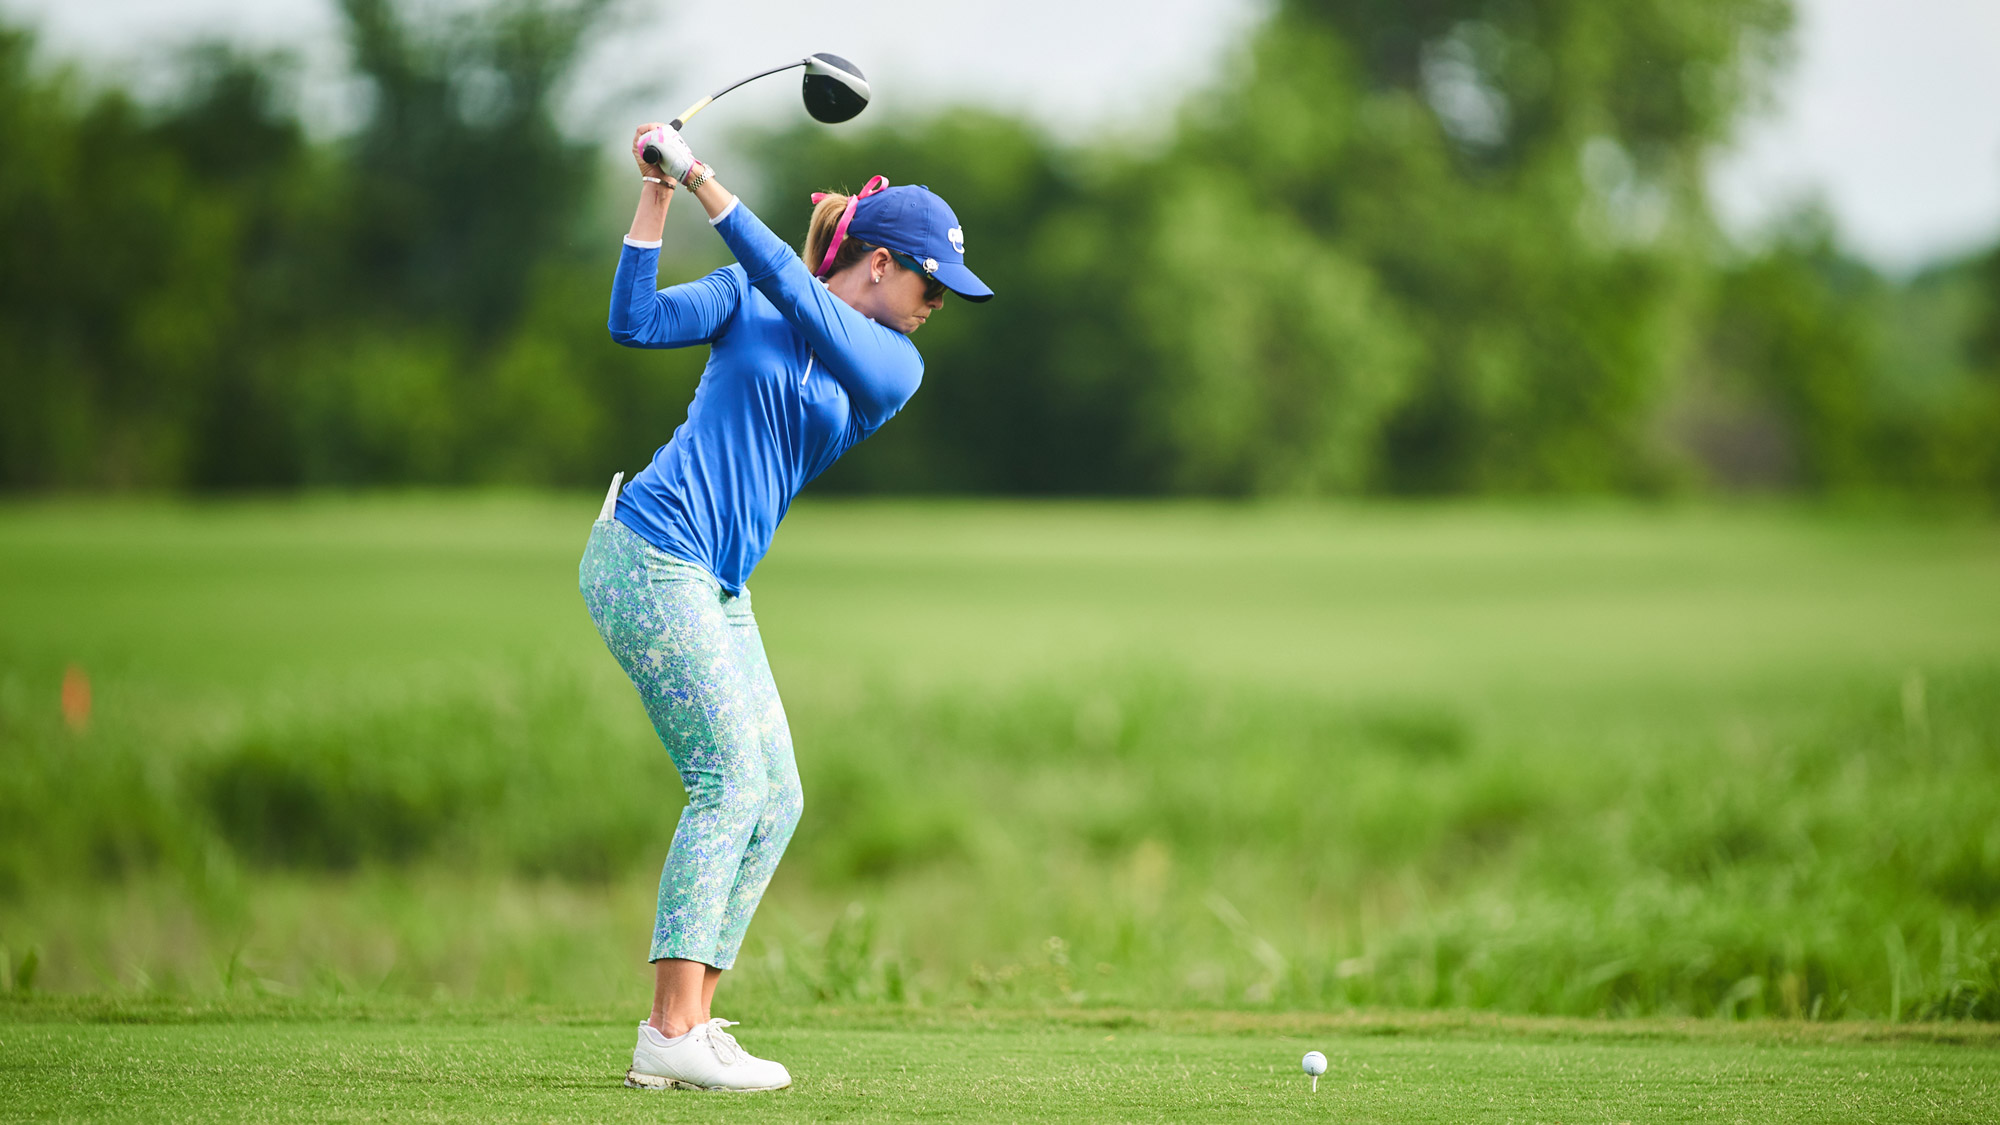 Paula Creamer in Round One of the VOA LPGA Texas Classic